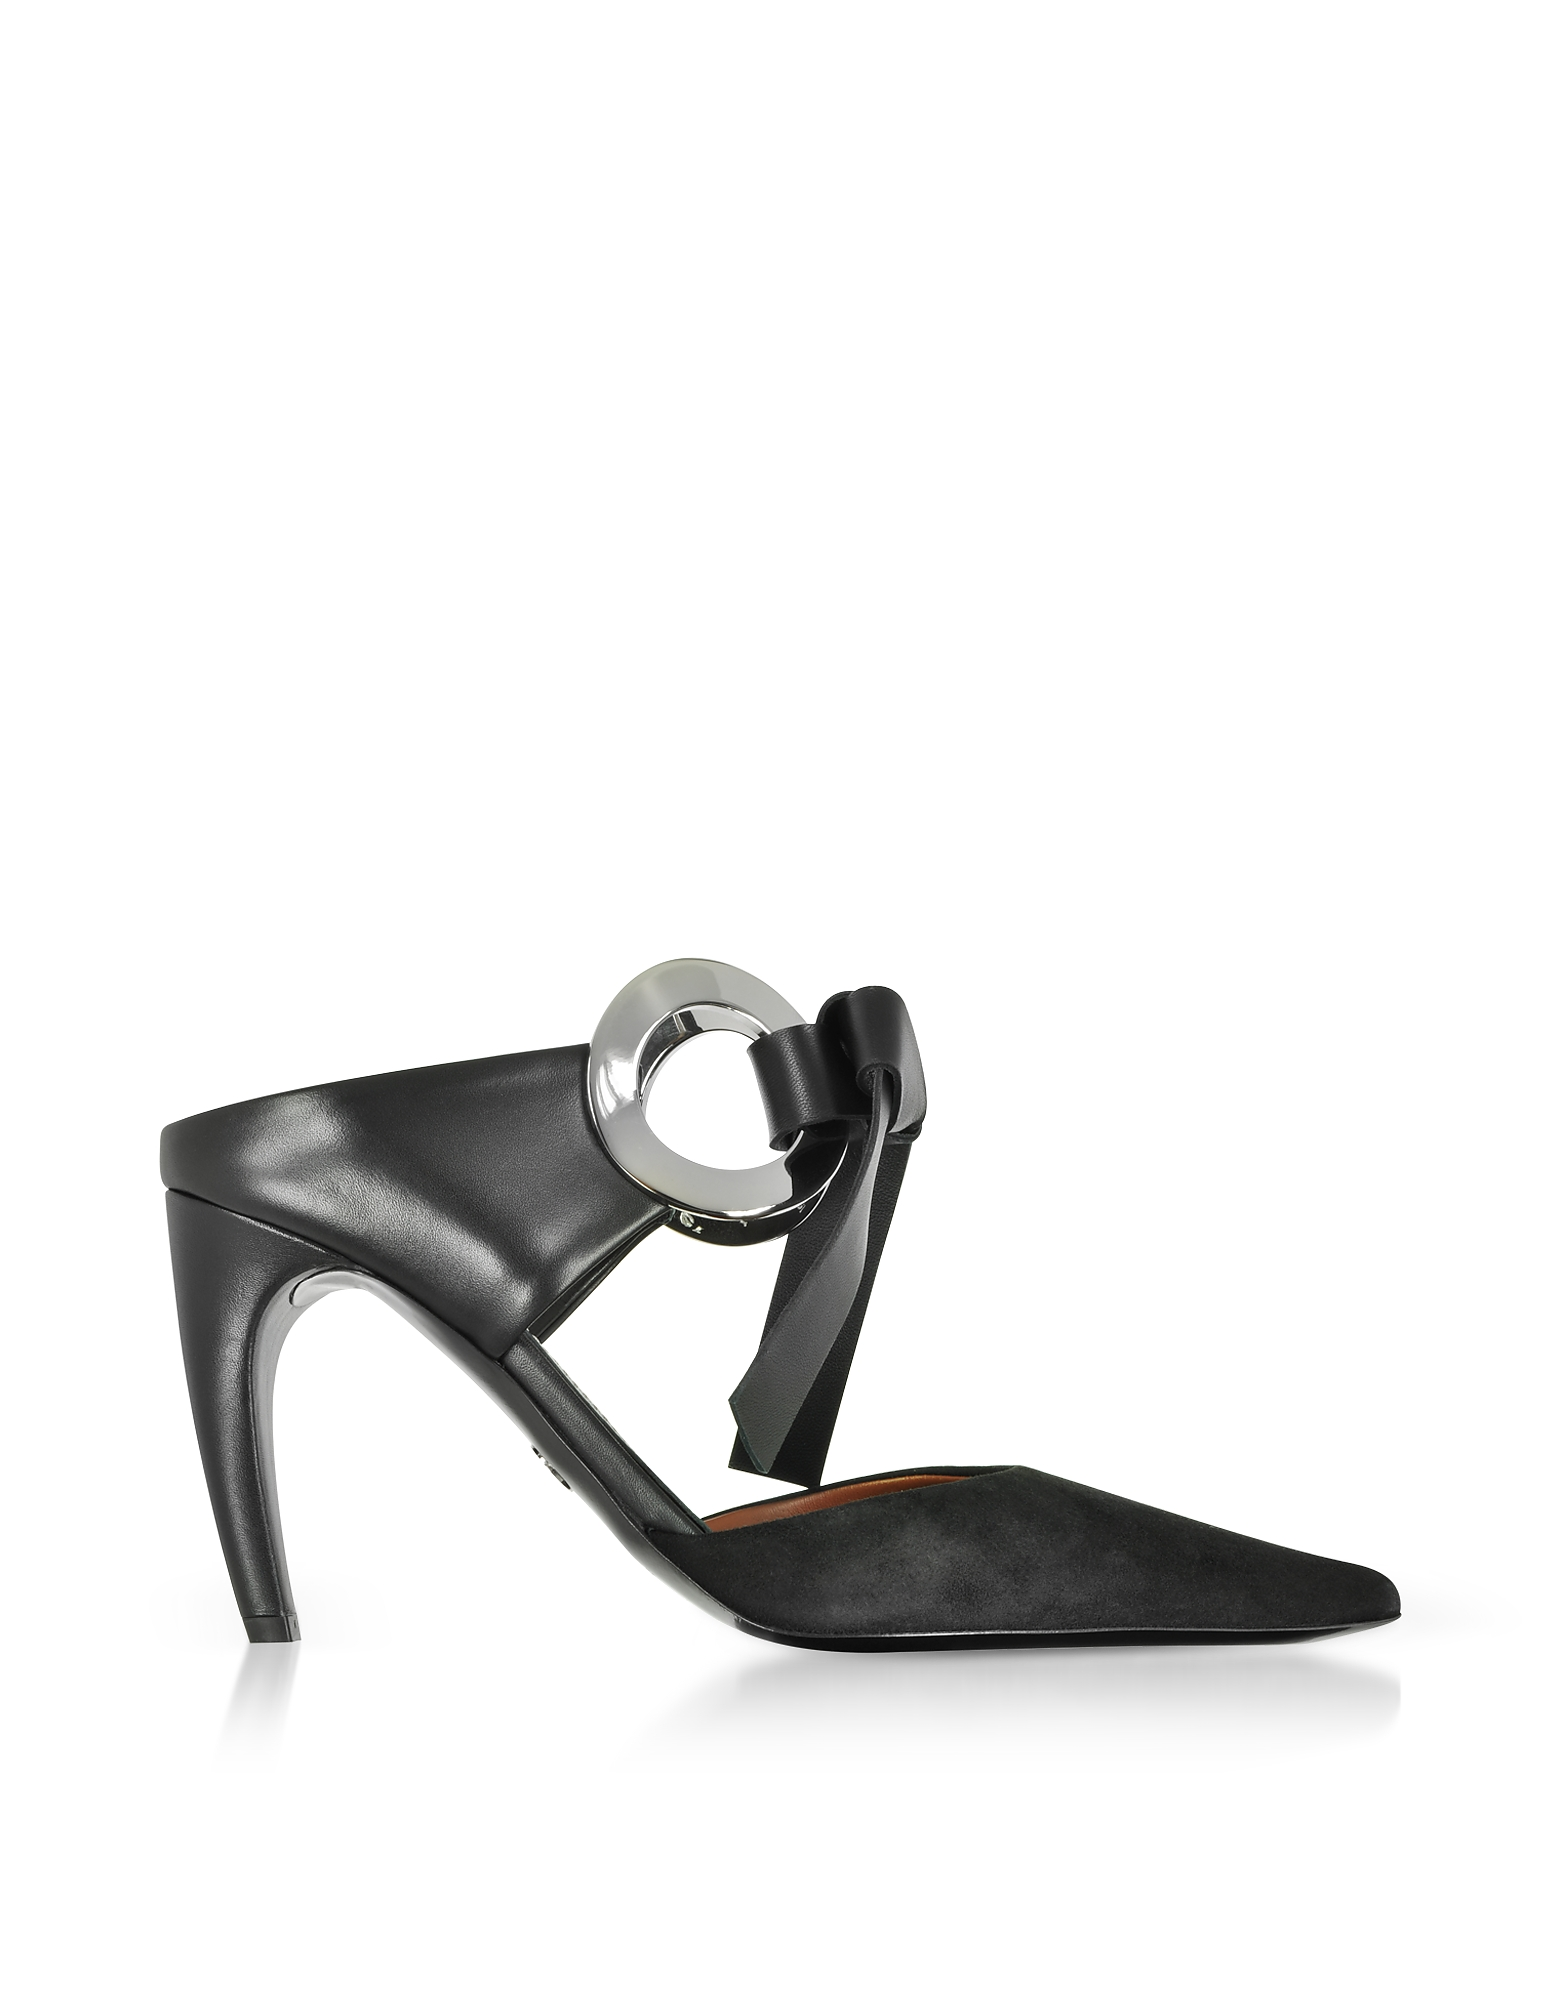 Black Suede High Heel Grommet Mules